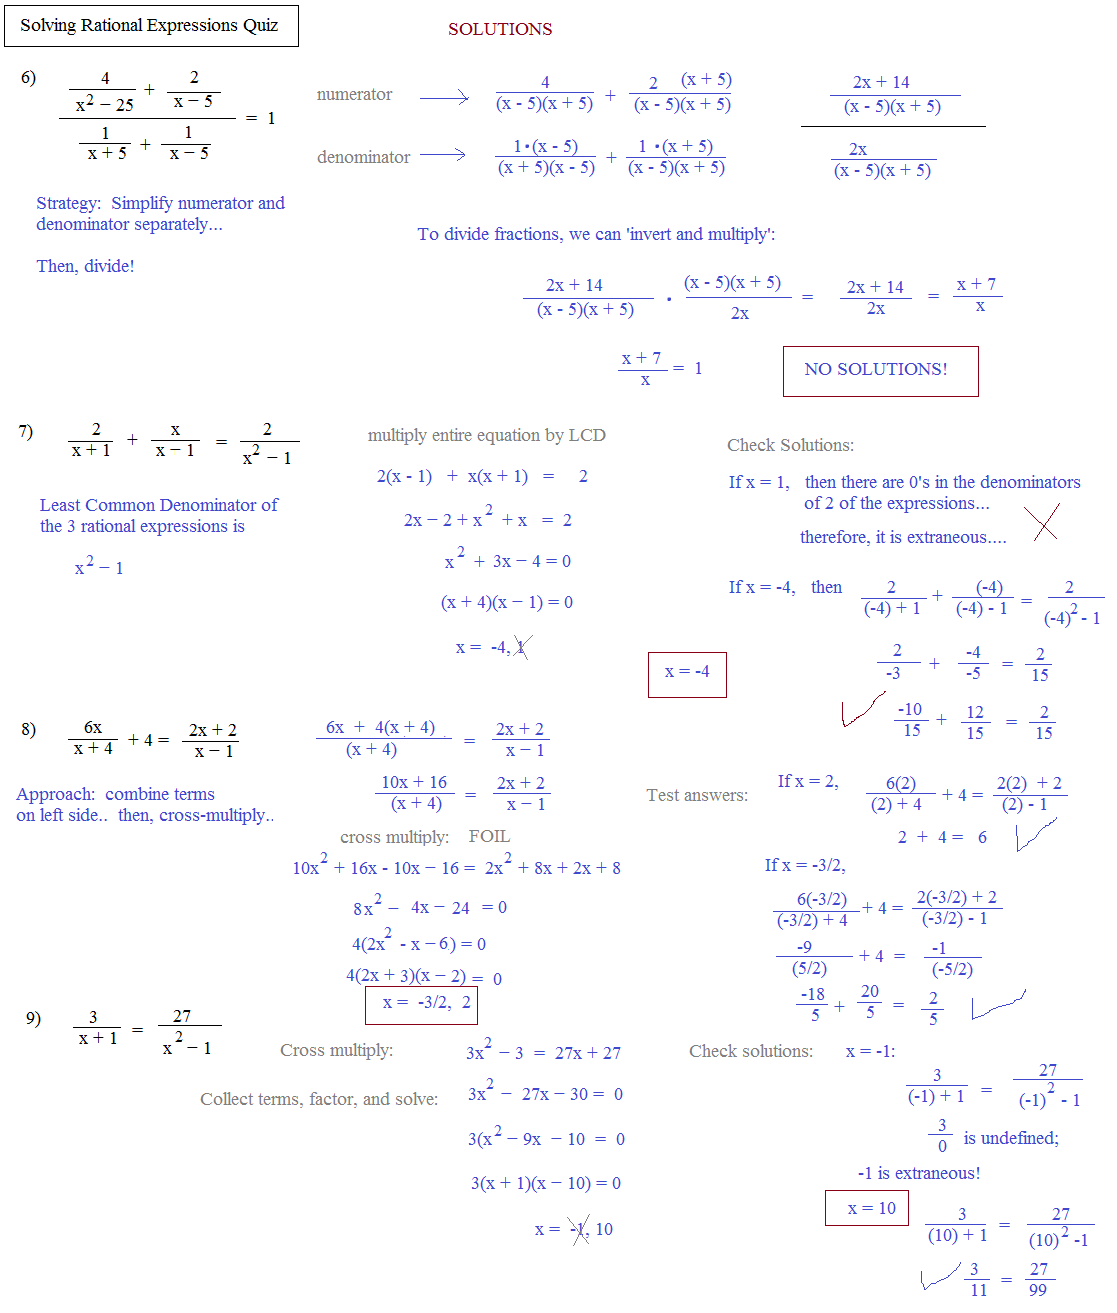 Solving Rational Equations Worksheet Algebra 1 Tessshebaylo – Solving Algebraic Expressions Worksheets